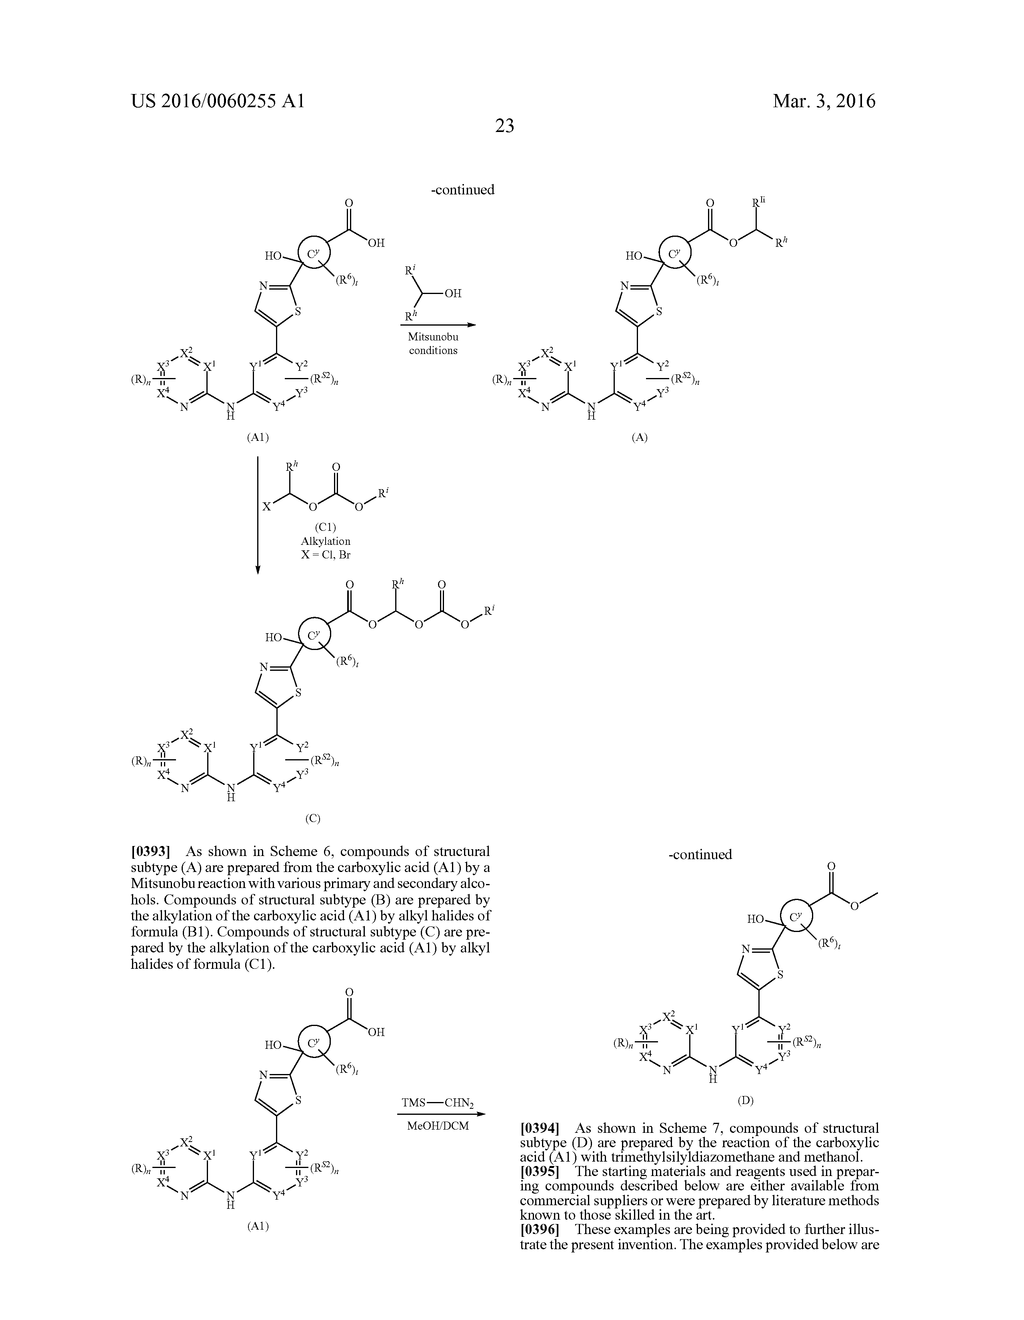 THIAZOLE-SUBSTITUTED AMINOHETEROARYLS AS SPLEEN TYROSINE KINASE INHIBITORS - diagram, schematic, and image 24